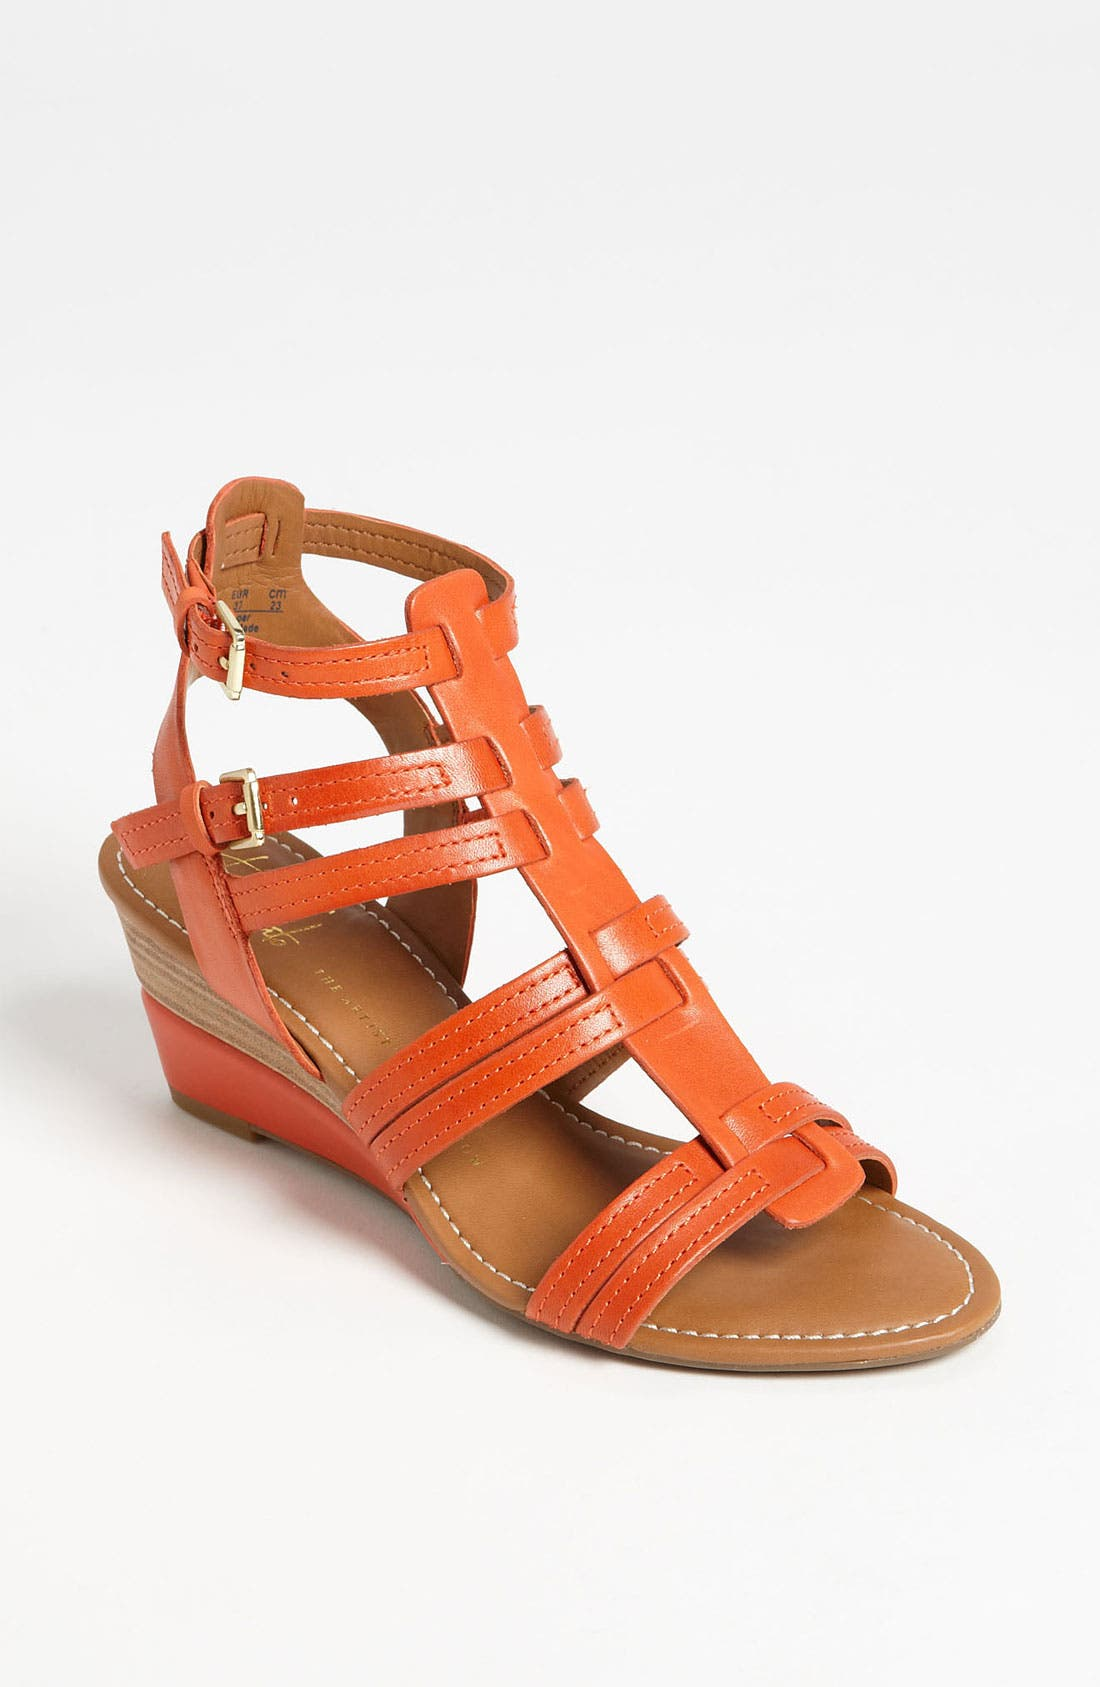 Main Image - Franco Sarto 'Era' Wedge Sandal